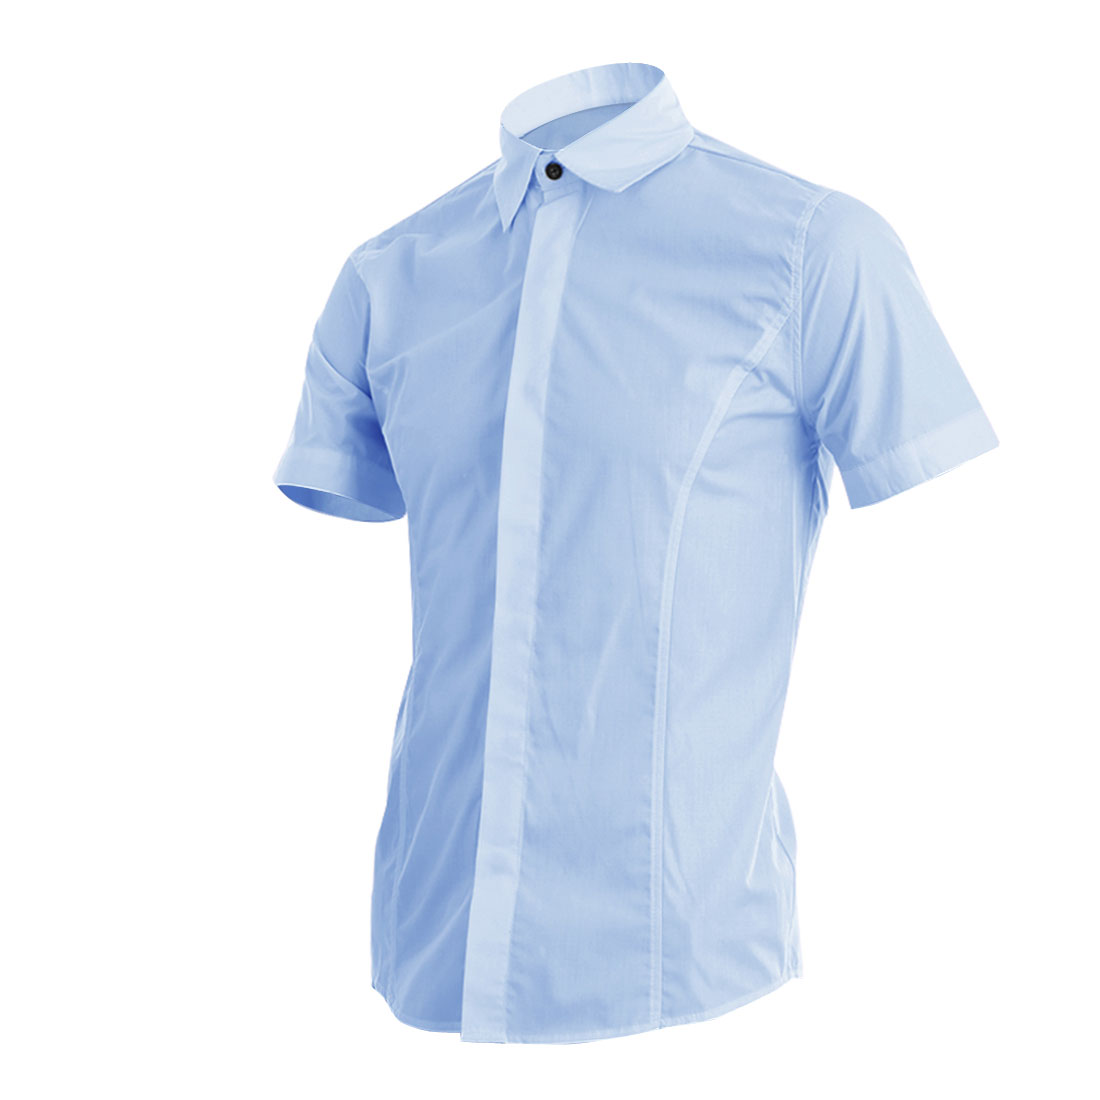 Man Short Sleeves Point Collar Solid Color Shirt Light Blue M